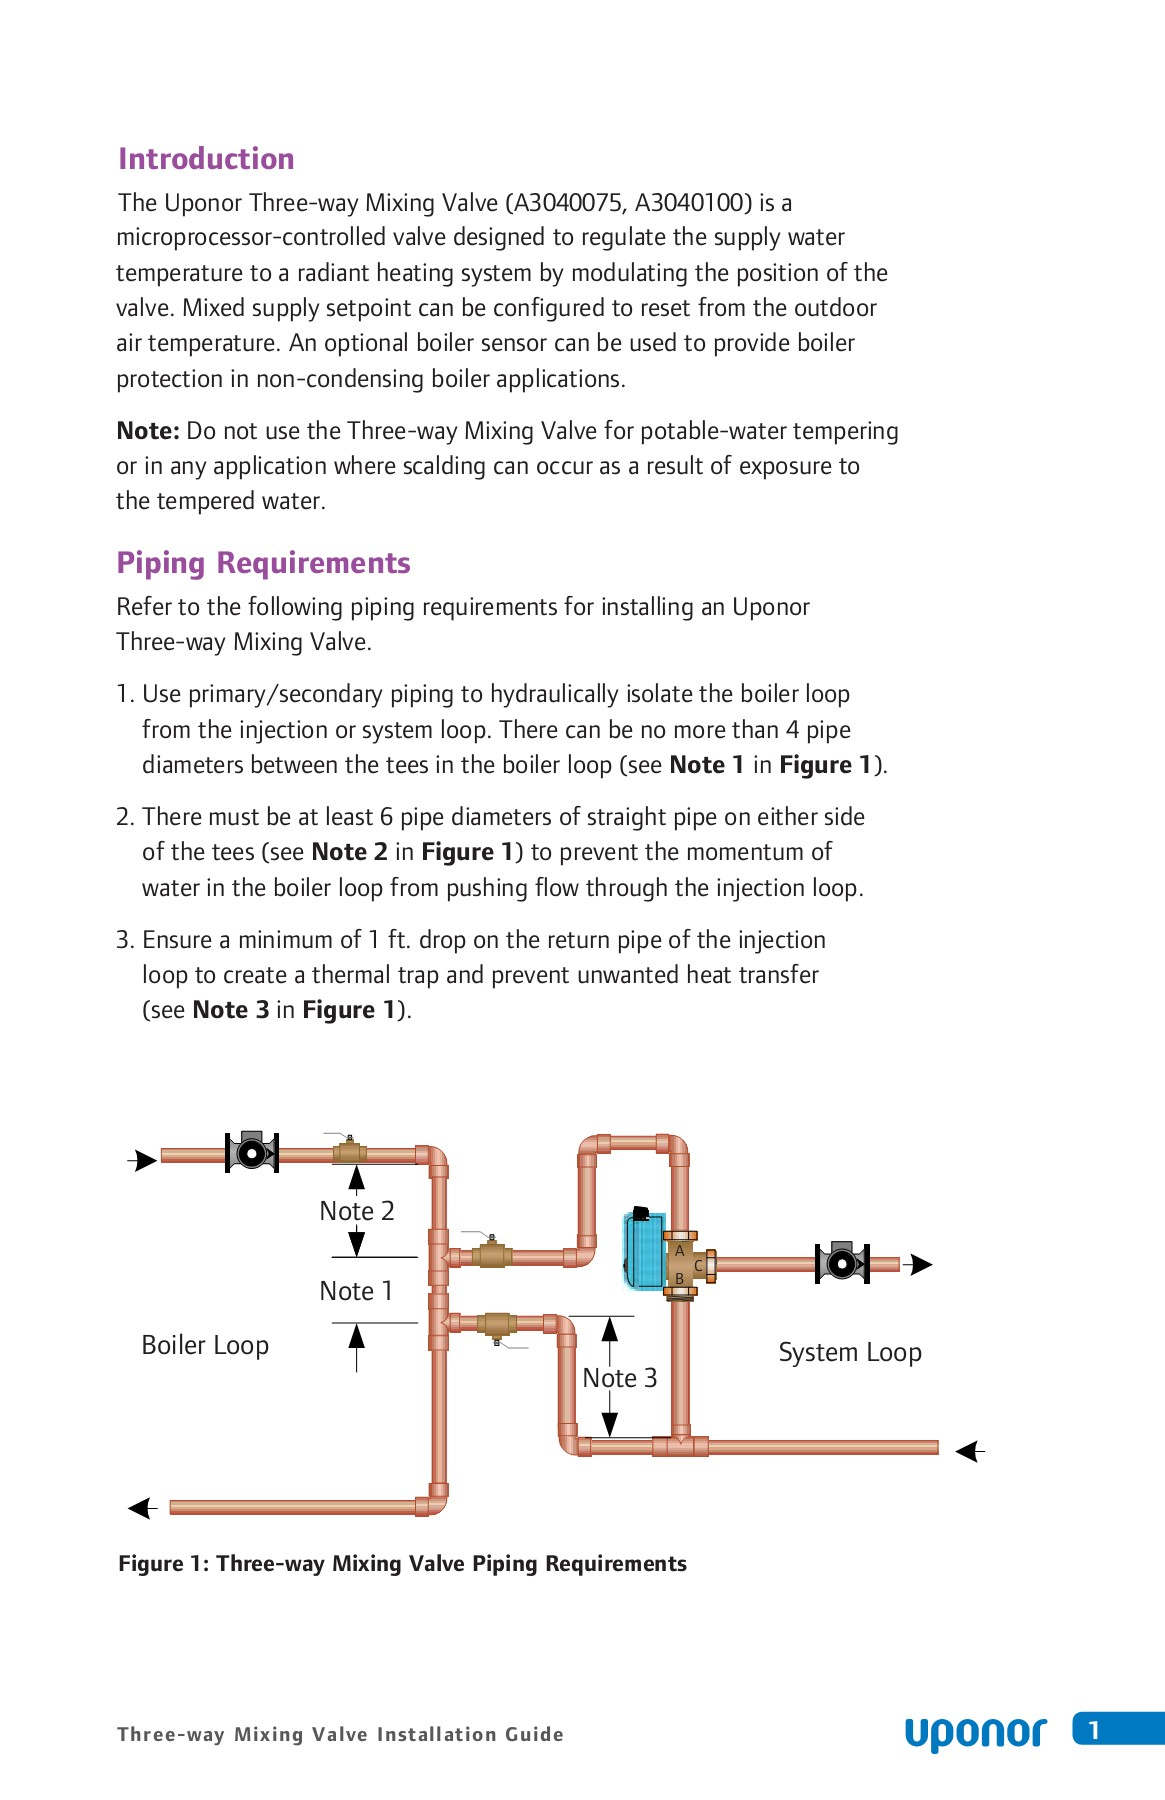 hight resolution of three way mixing valve installation guide uponor pro pages 1 18 text version anyflip